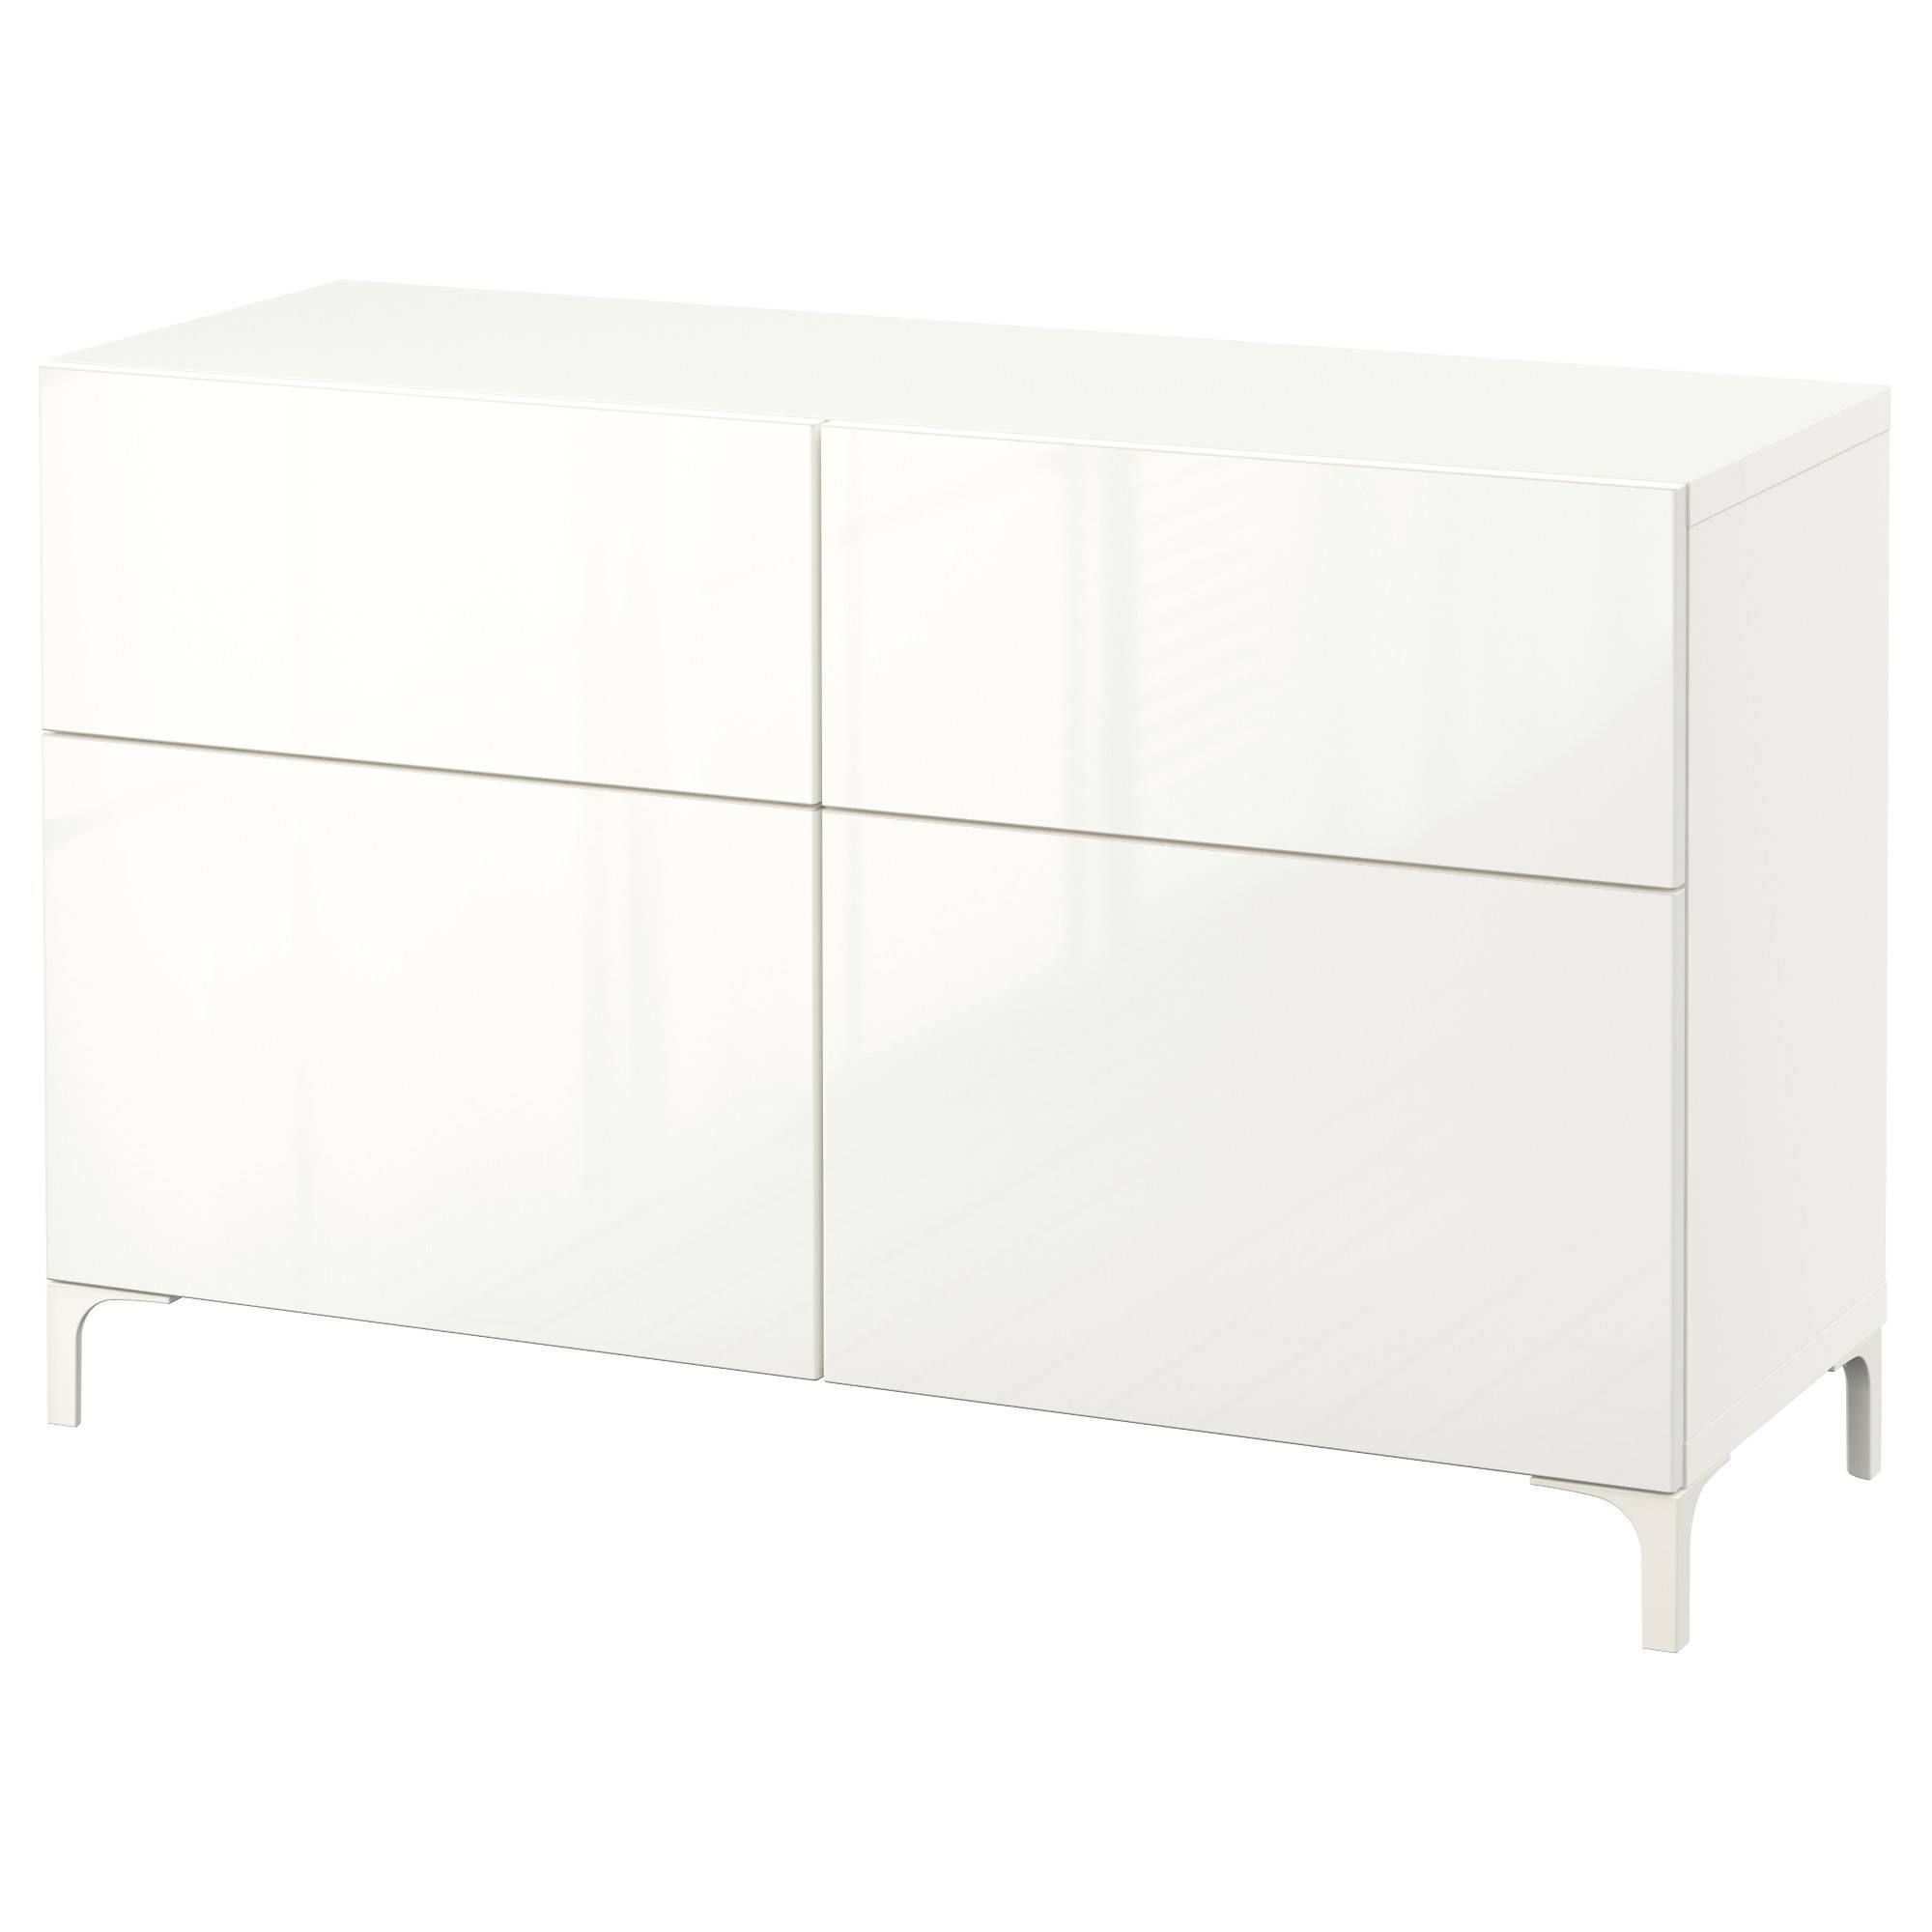 Bestå Storage Combination W Doors/drawers - White/selsviken High intended for White Gloss Ikea Sideboards (Image 3 of 15)